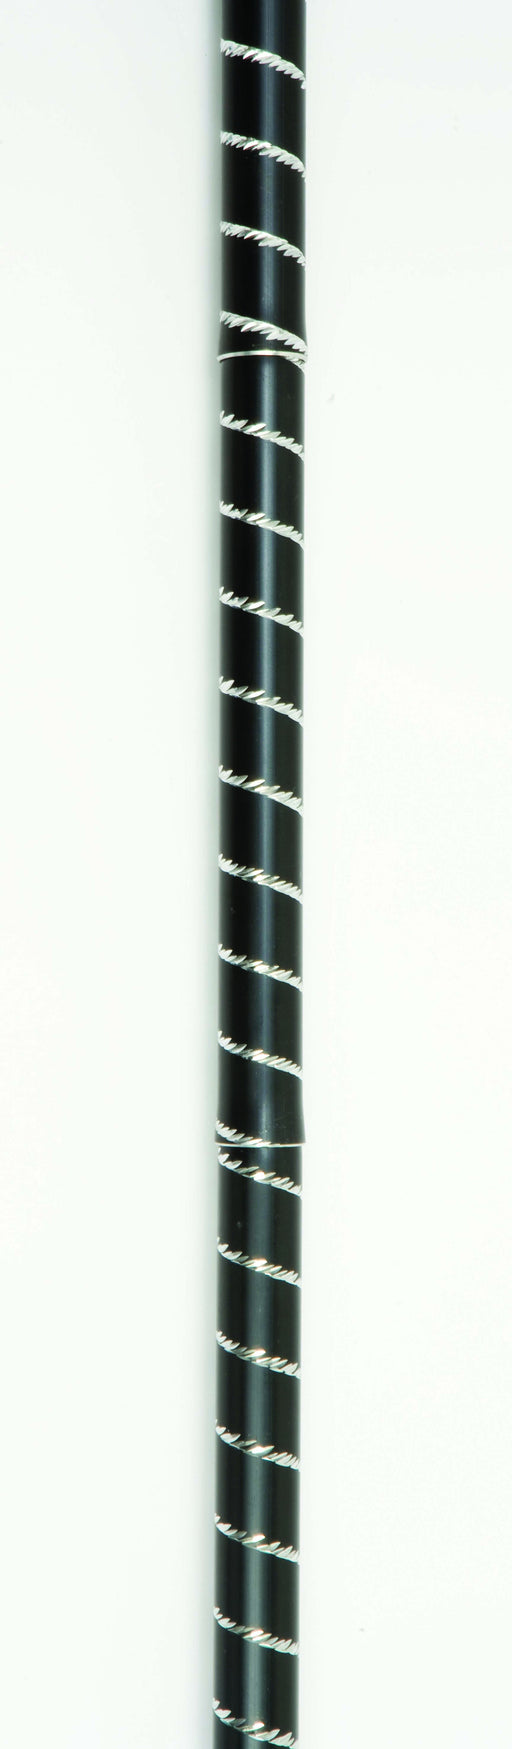 Folding Cane With Strap (Black Stripe) - Mobility2you - discount wholesale prices - from Drive DeVilbiss Healthcare